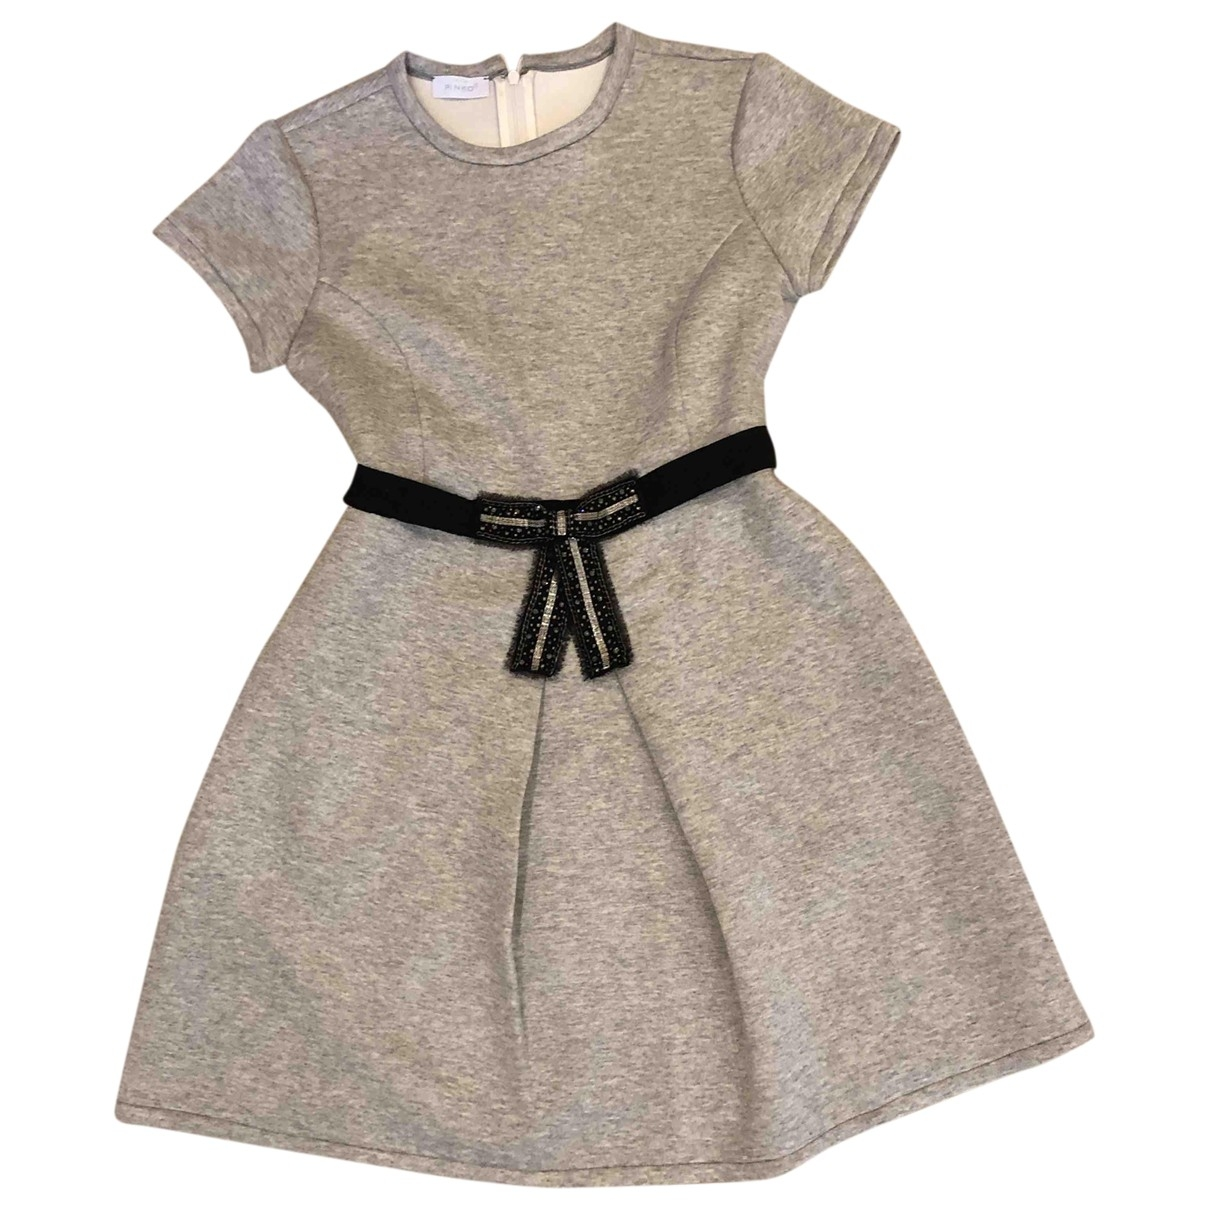 Pinko \N Grey dress for Kids 10 years - until 56 inches UK